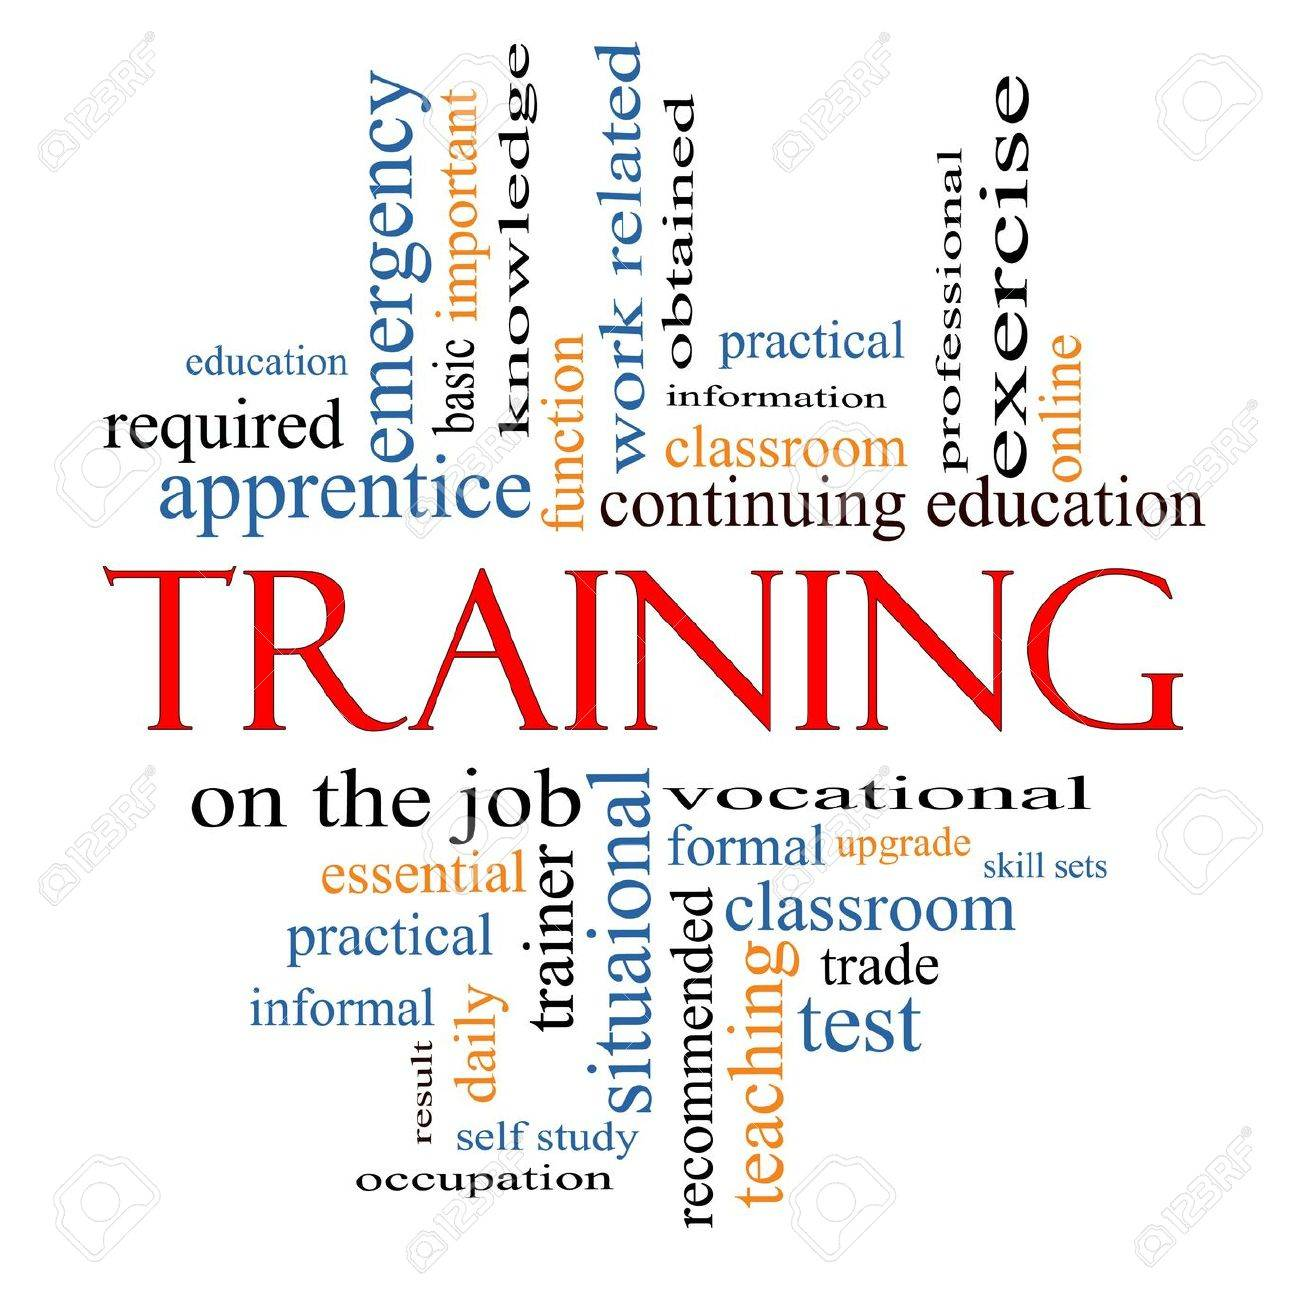 training word cloud concept great terms such as classroom training word cloud concept great terms such as classroom education trade vocational